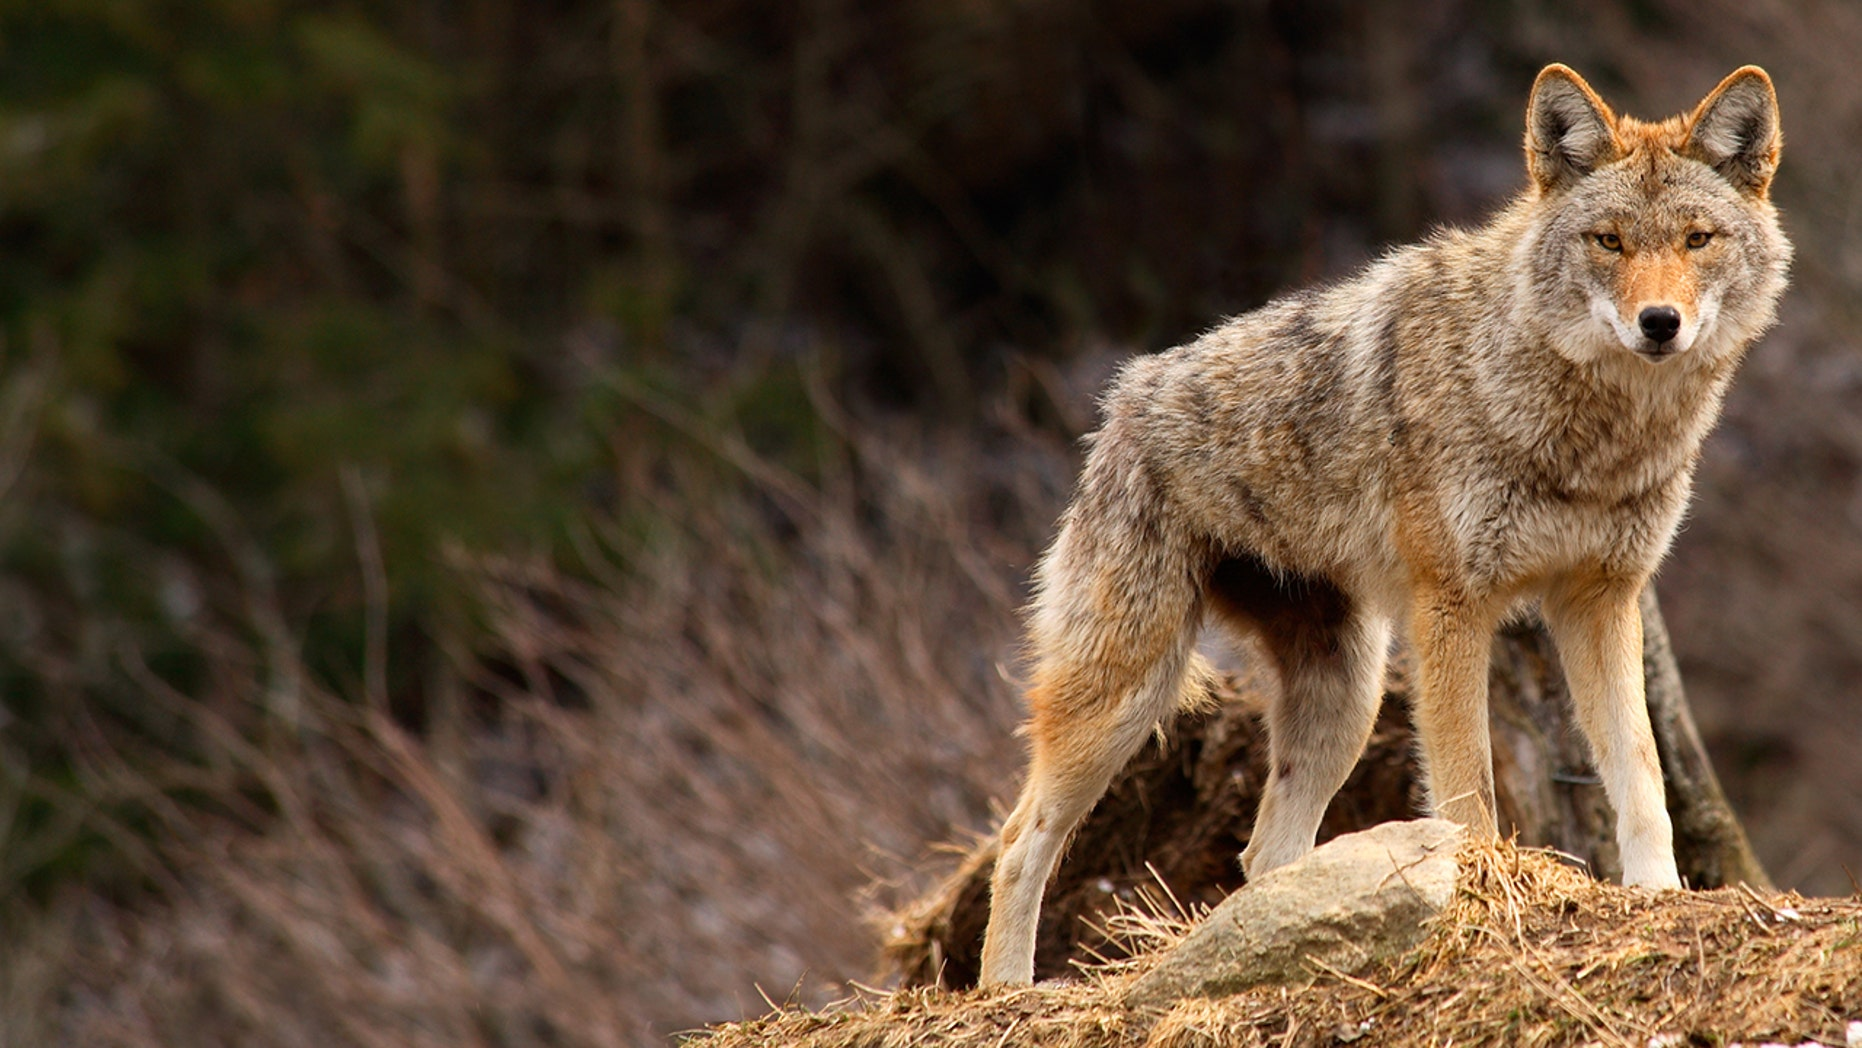 A coyote attacked a teen during the weekend in Massachusetts, local media reported.